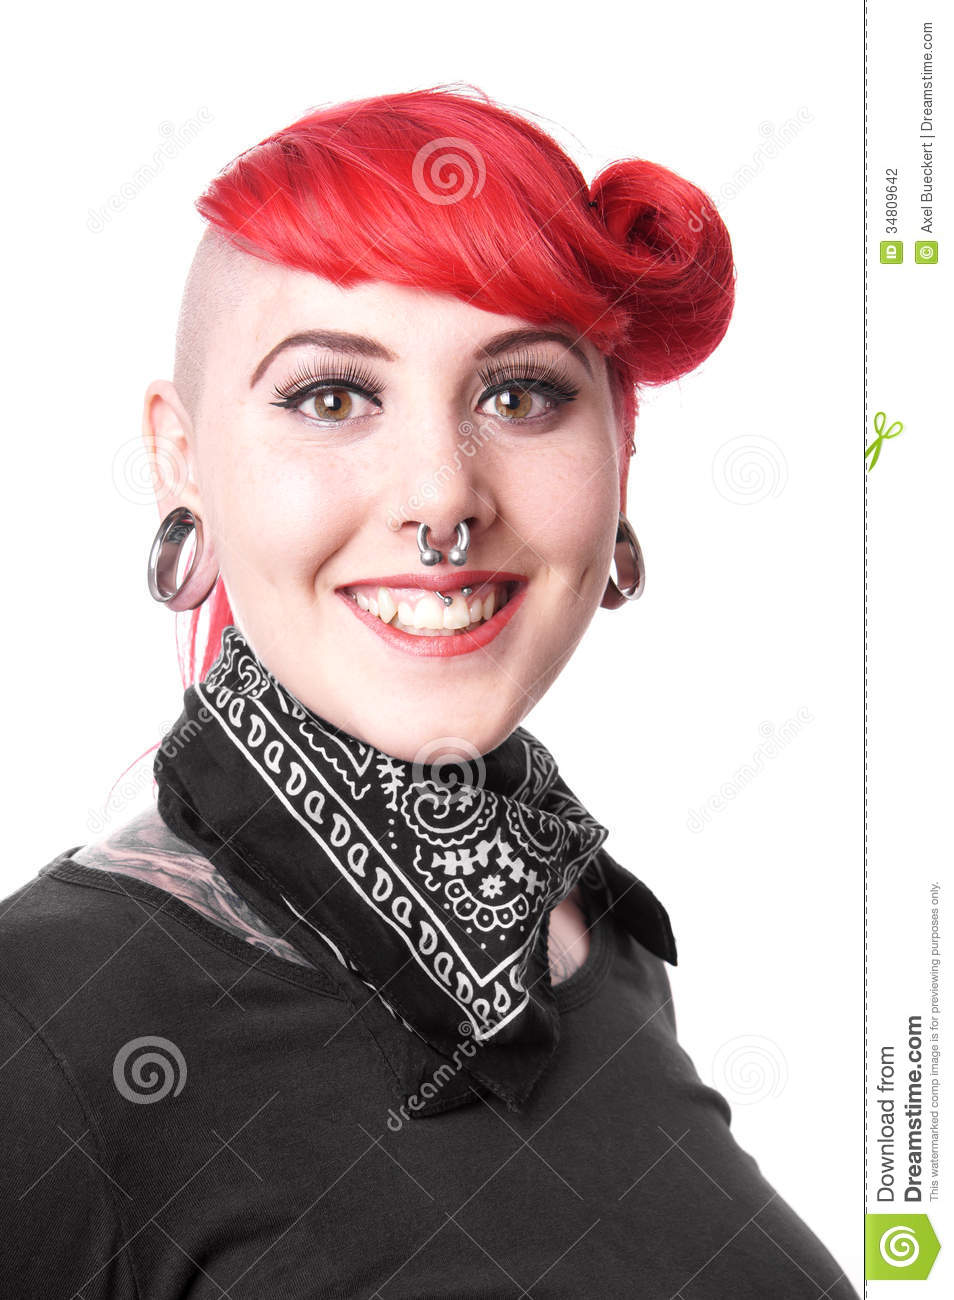 Happy woman with piercings